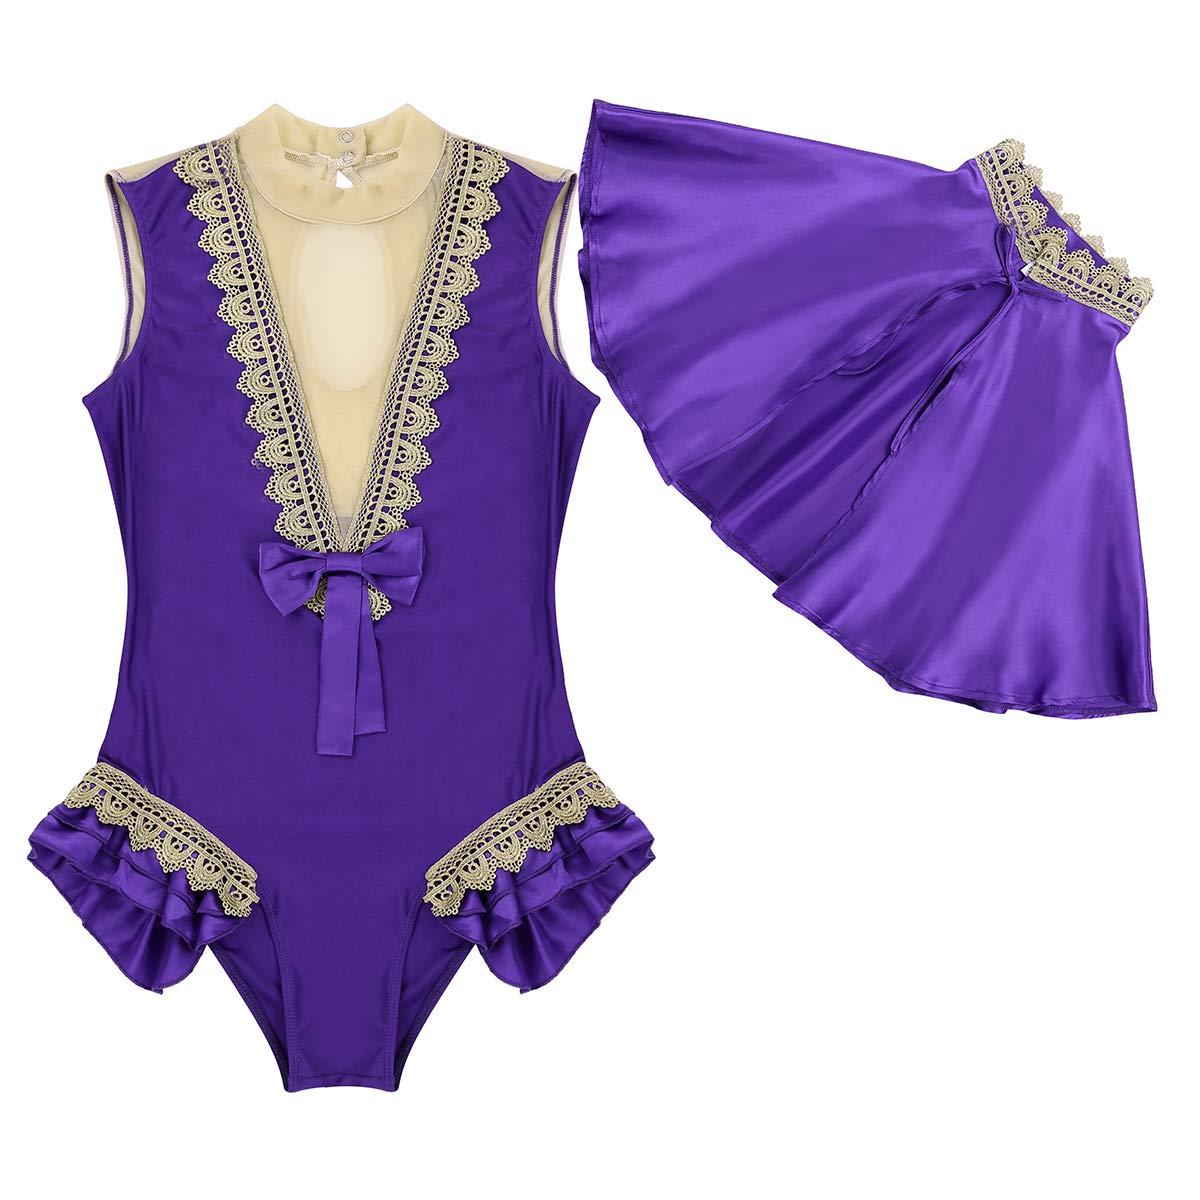 iiniim 2 Pcs Women Adults Showman Cosplay Costume Halloween Party Role Play Outfit Bodysuit